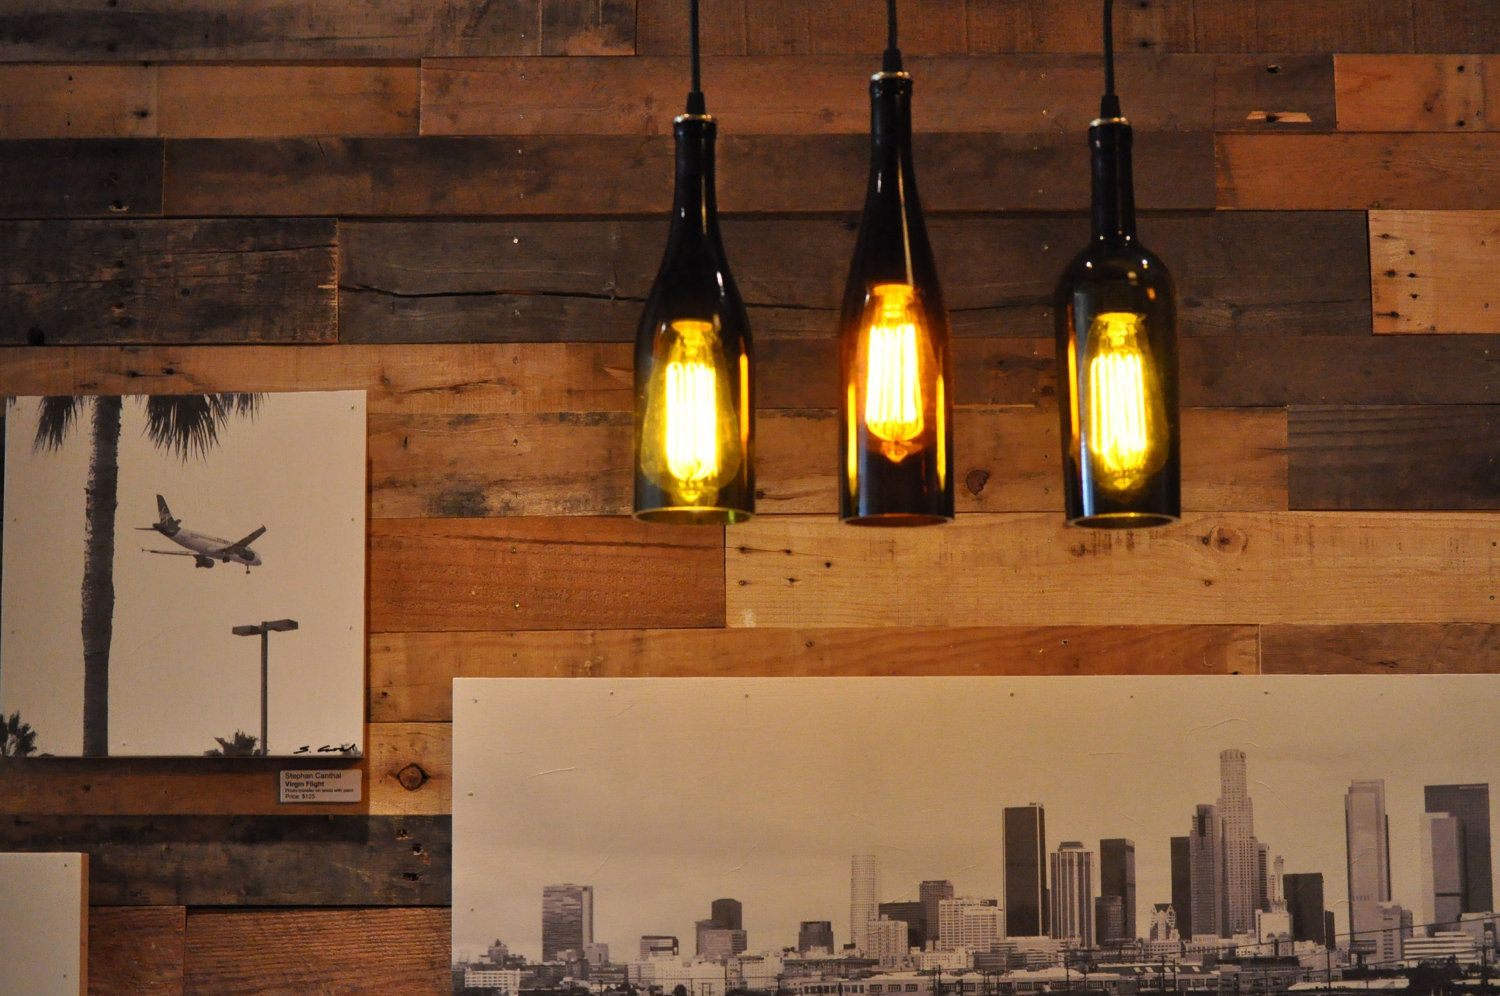 3 wine bottle pendant lamp hanging lamp track light edison lightbulb 3 wine bottle pendant lamp hanging lamp track light edison lightbulb 21000 via etsy aloadofball Image collections